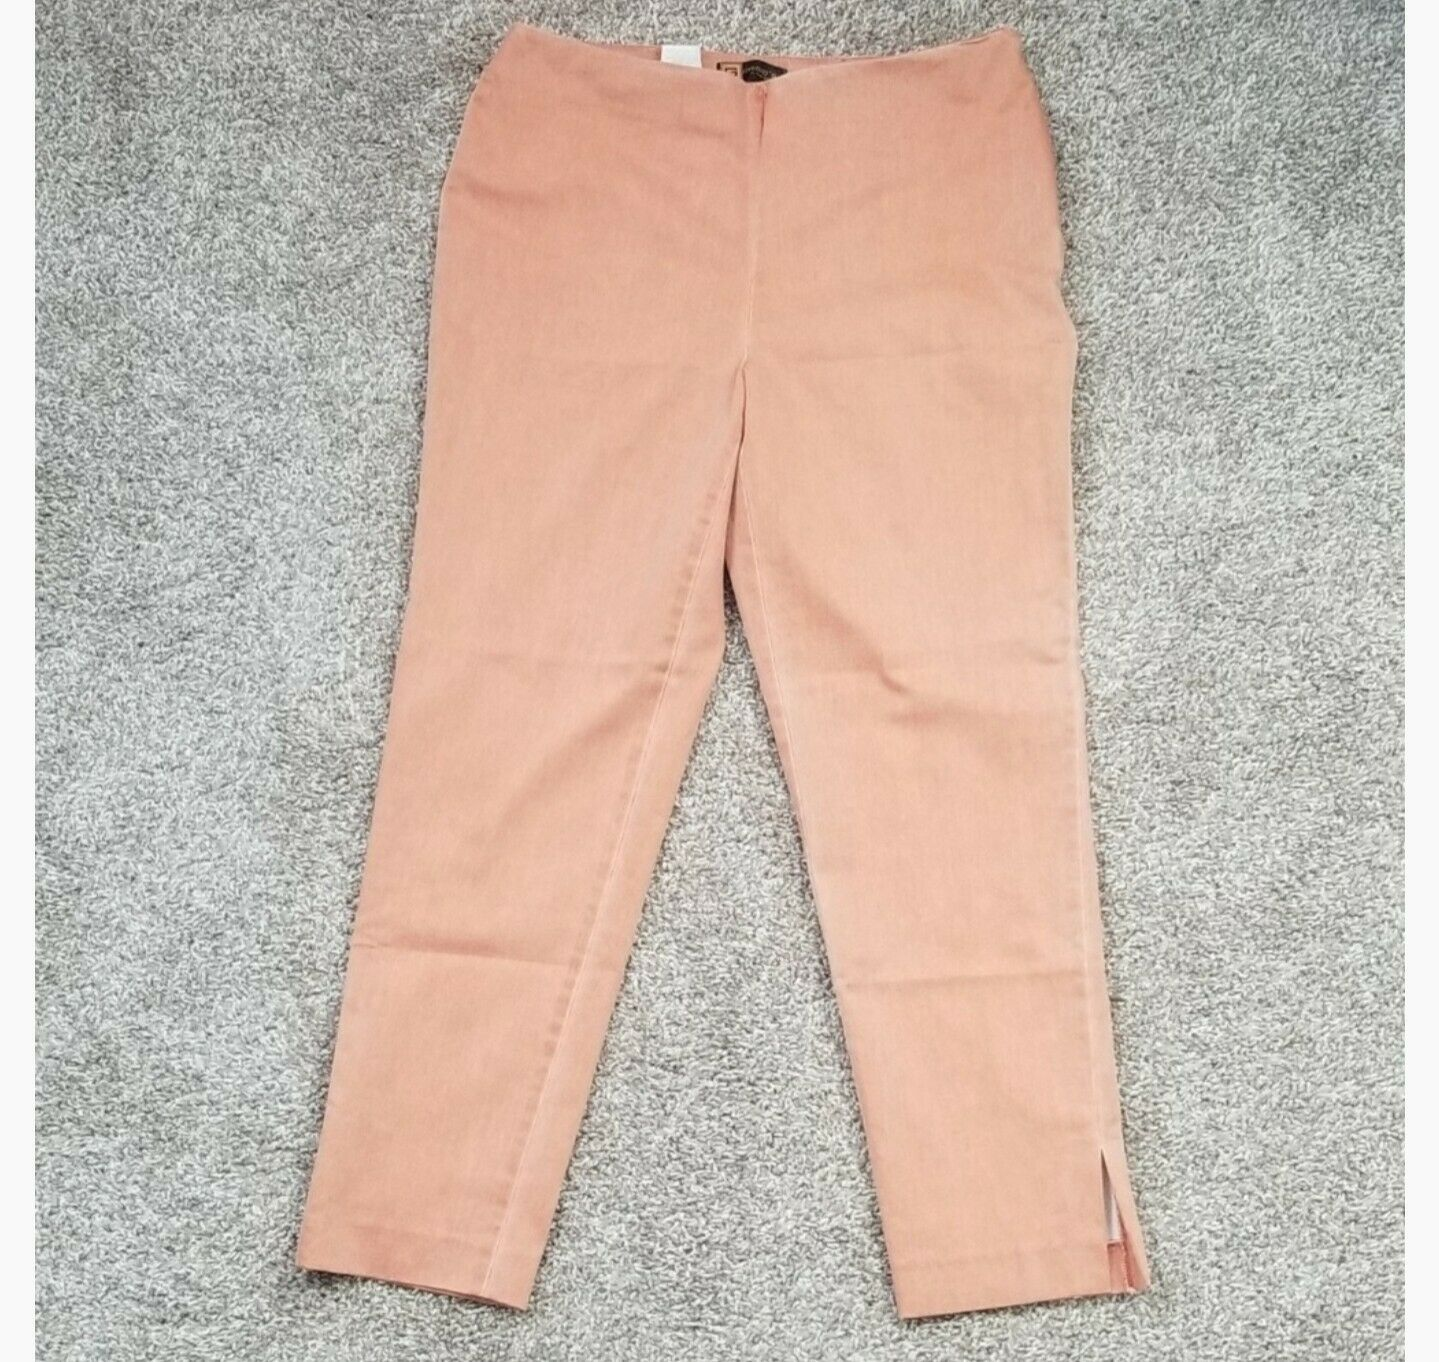 NWT Giorgio's of Palm Beach Vintage Style Relaxted Stretchy Pant Made in